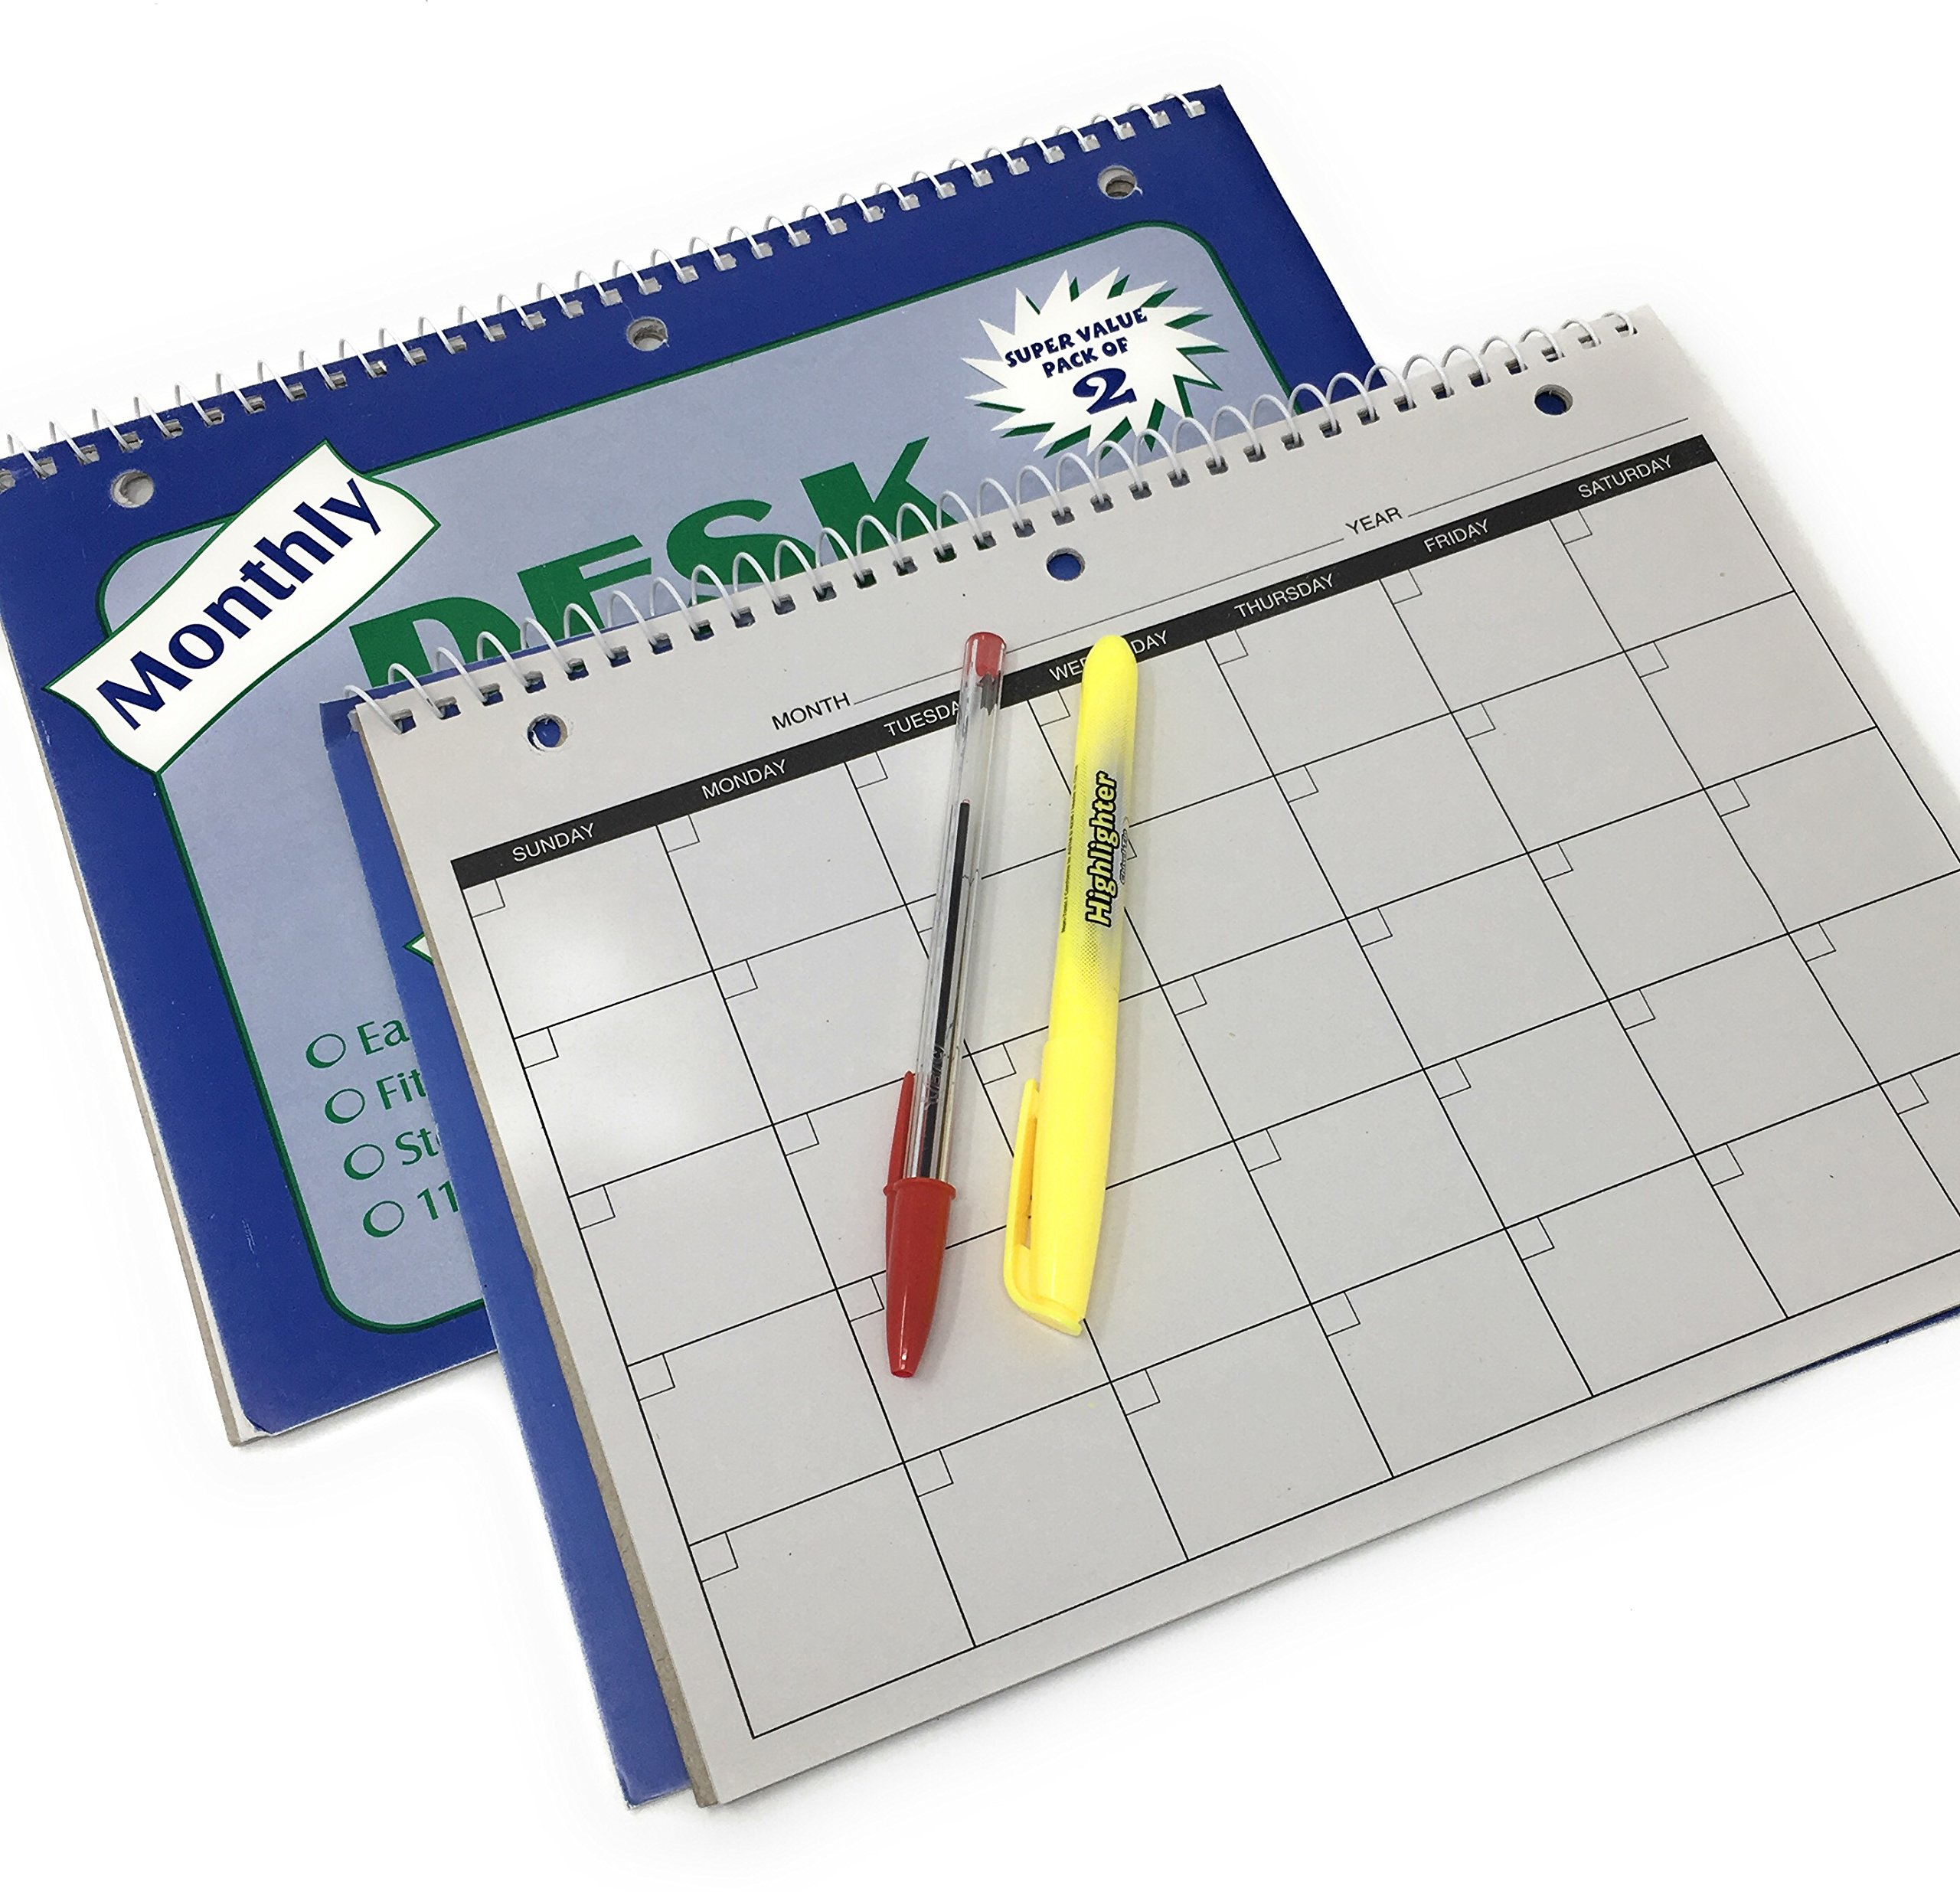 2-12 Month Undated Planners w/Bic Cristal Red Pen & Yellow Highlighter Bonus Bundle